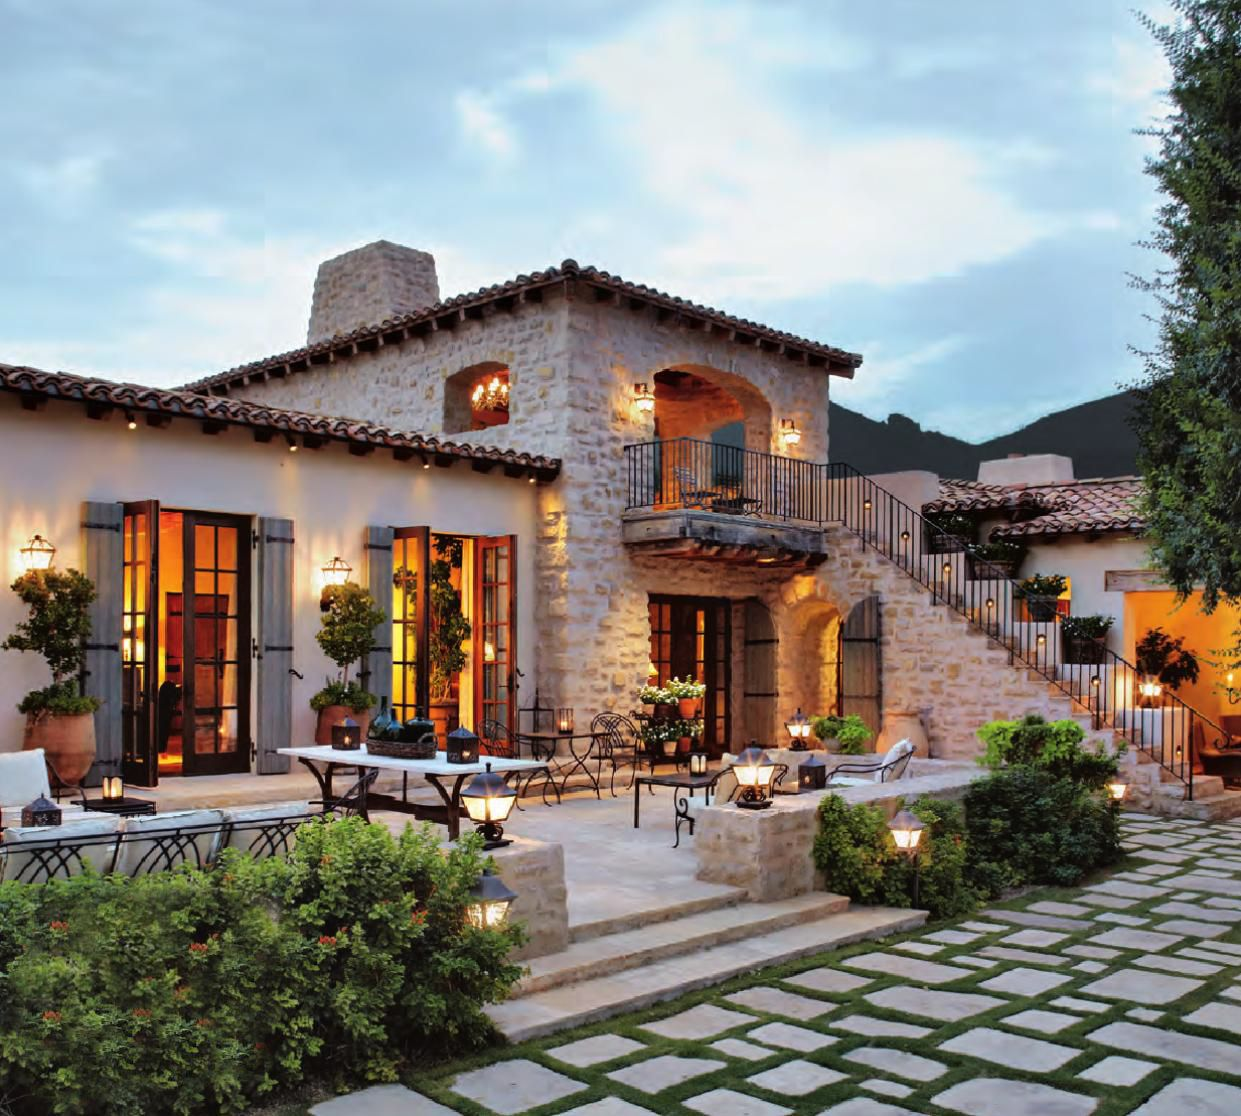 Exterior Pictures Of Mediterranean Style Homes Cities: Mediterranean Homes, House